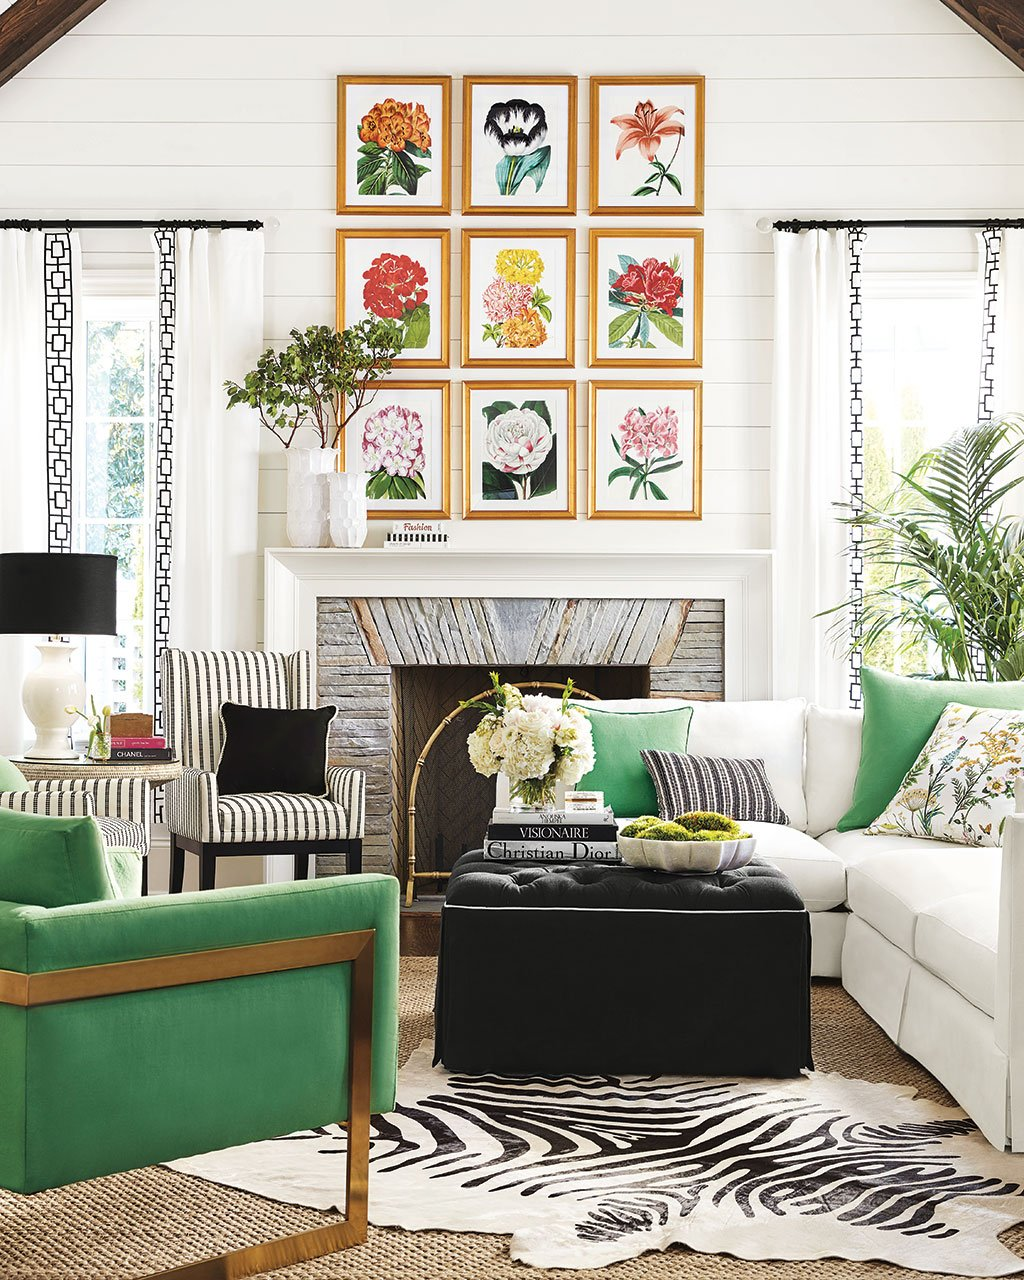 House And Home Decor In 2019: How To Fix 5 Common Decorating Mistakes